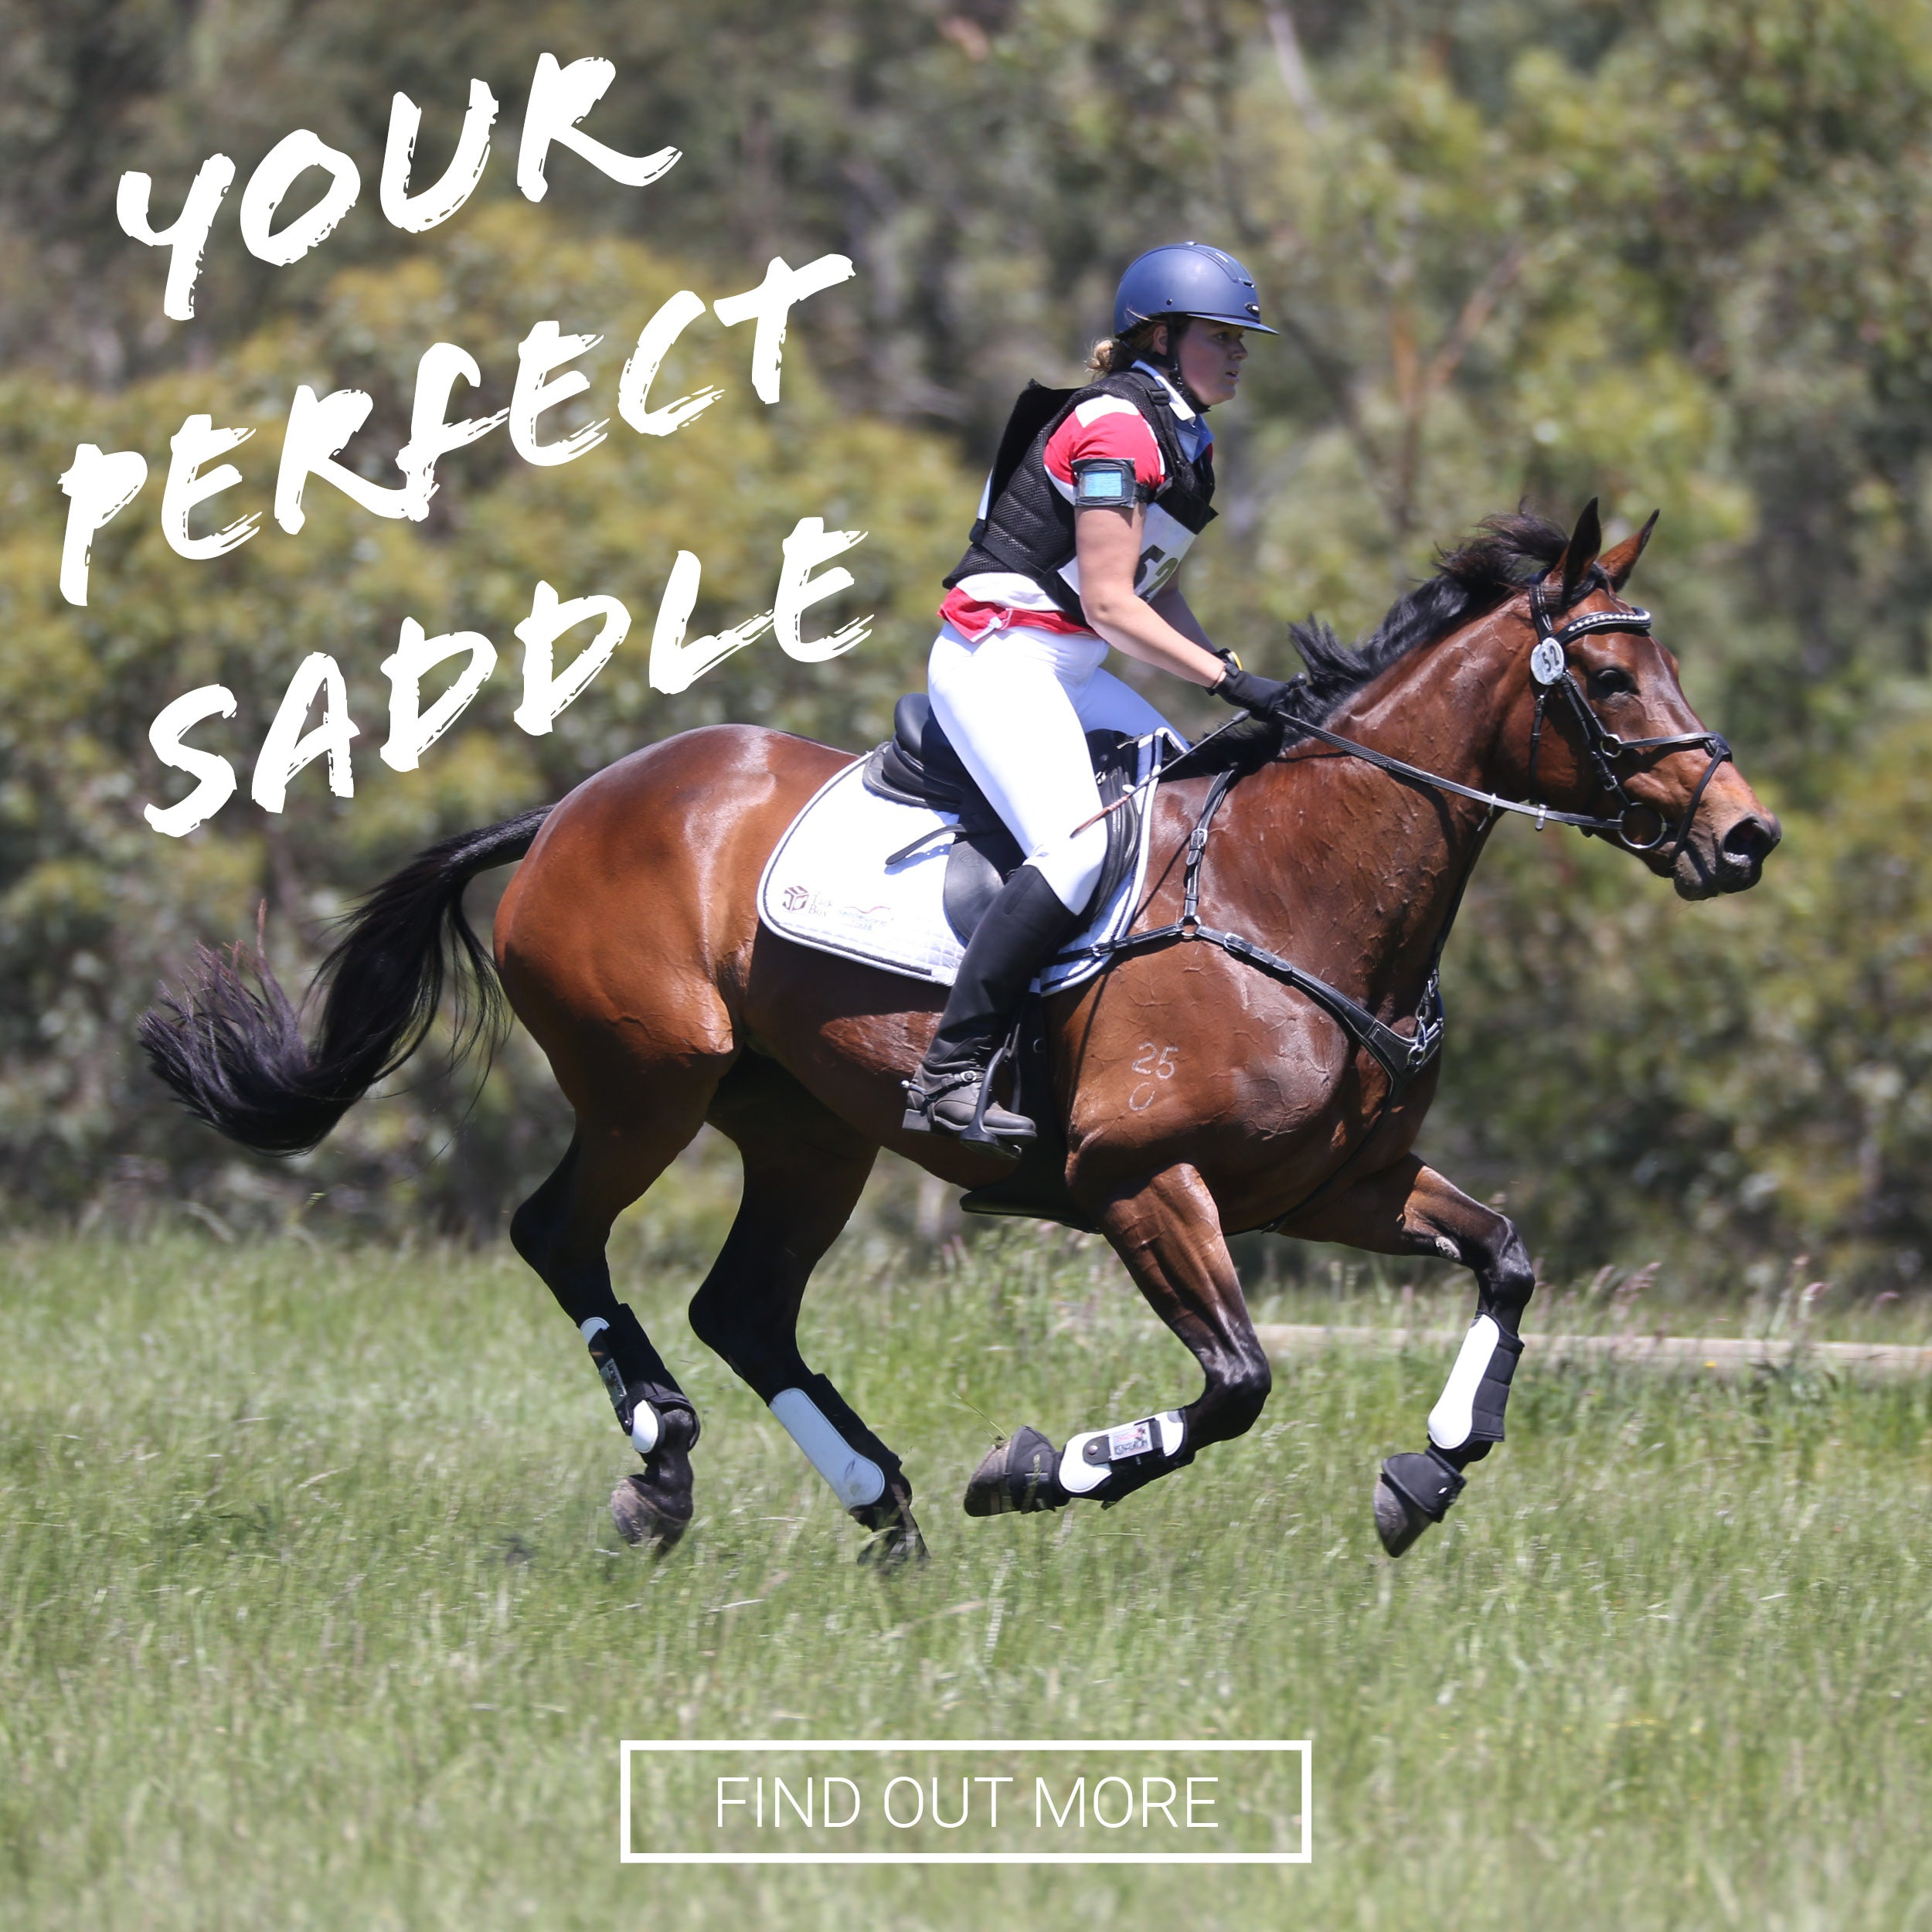 Saddleworld | Amazing Products & Expert Industry Knowledge